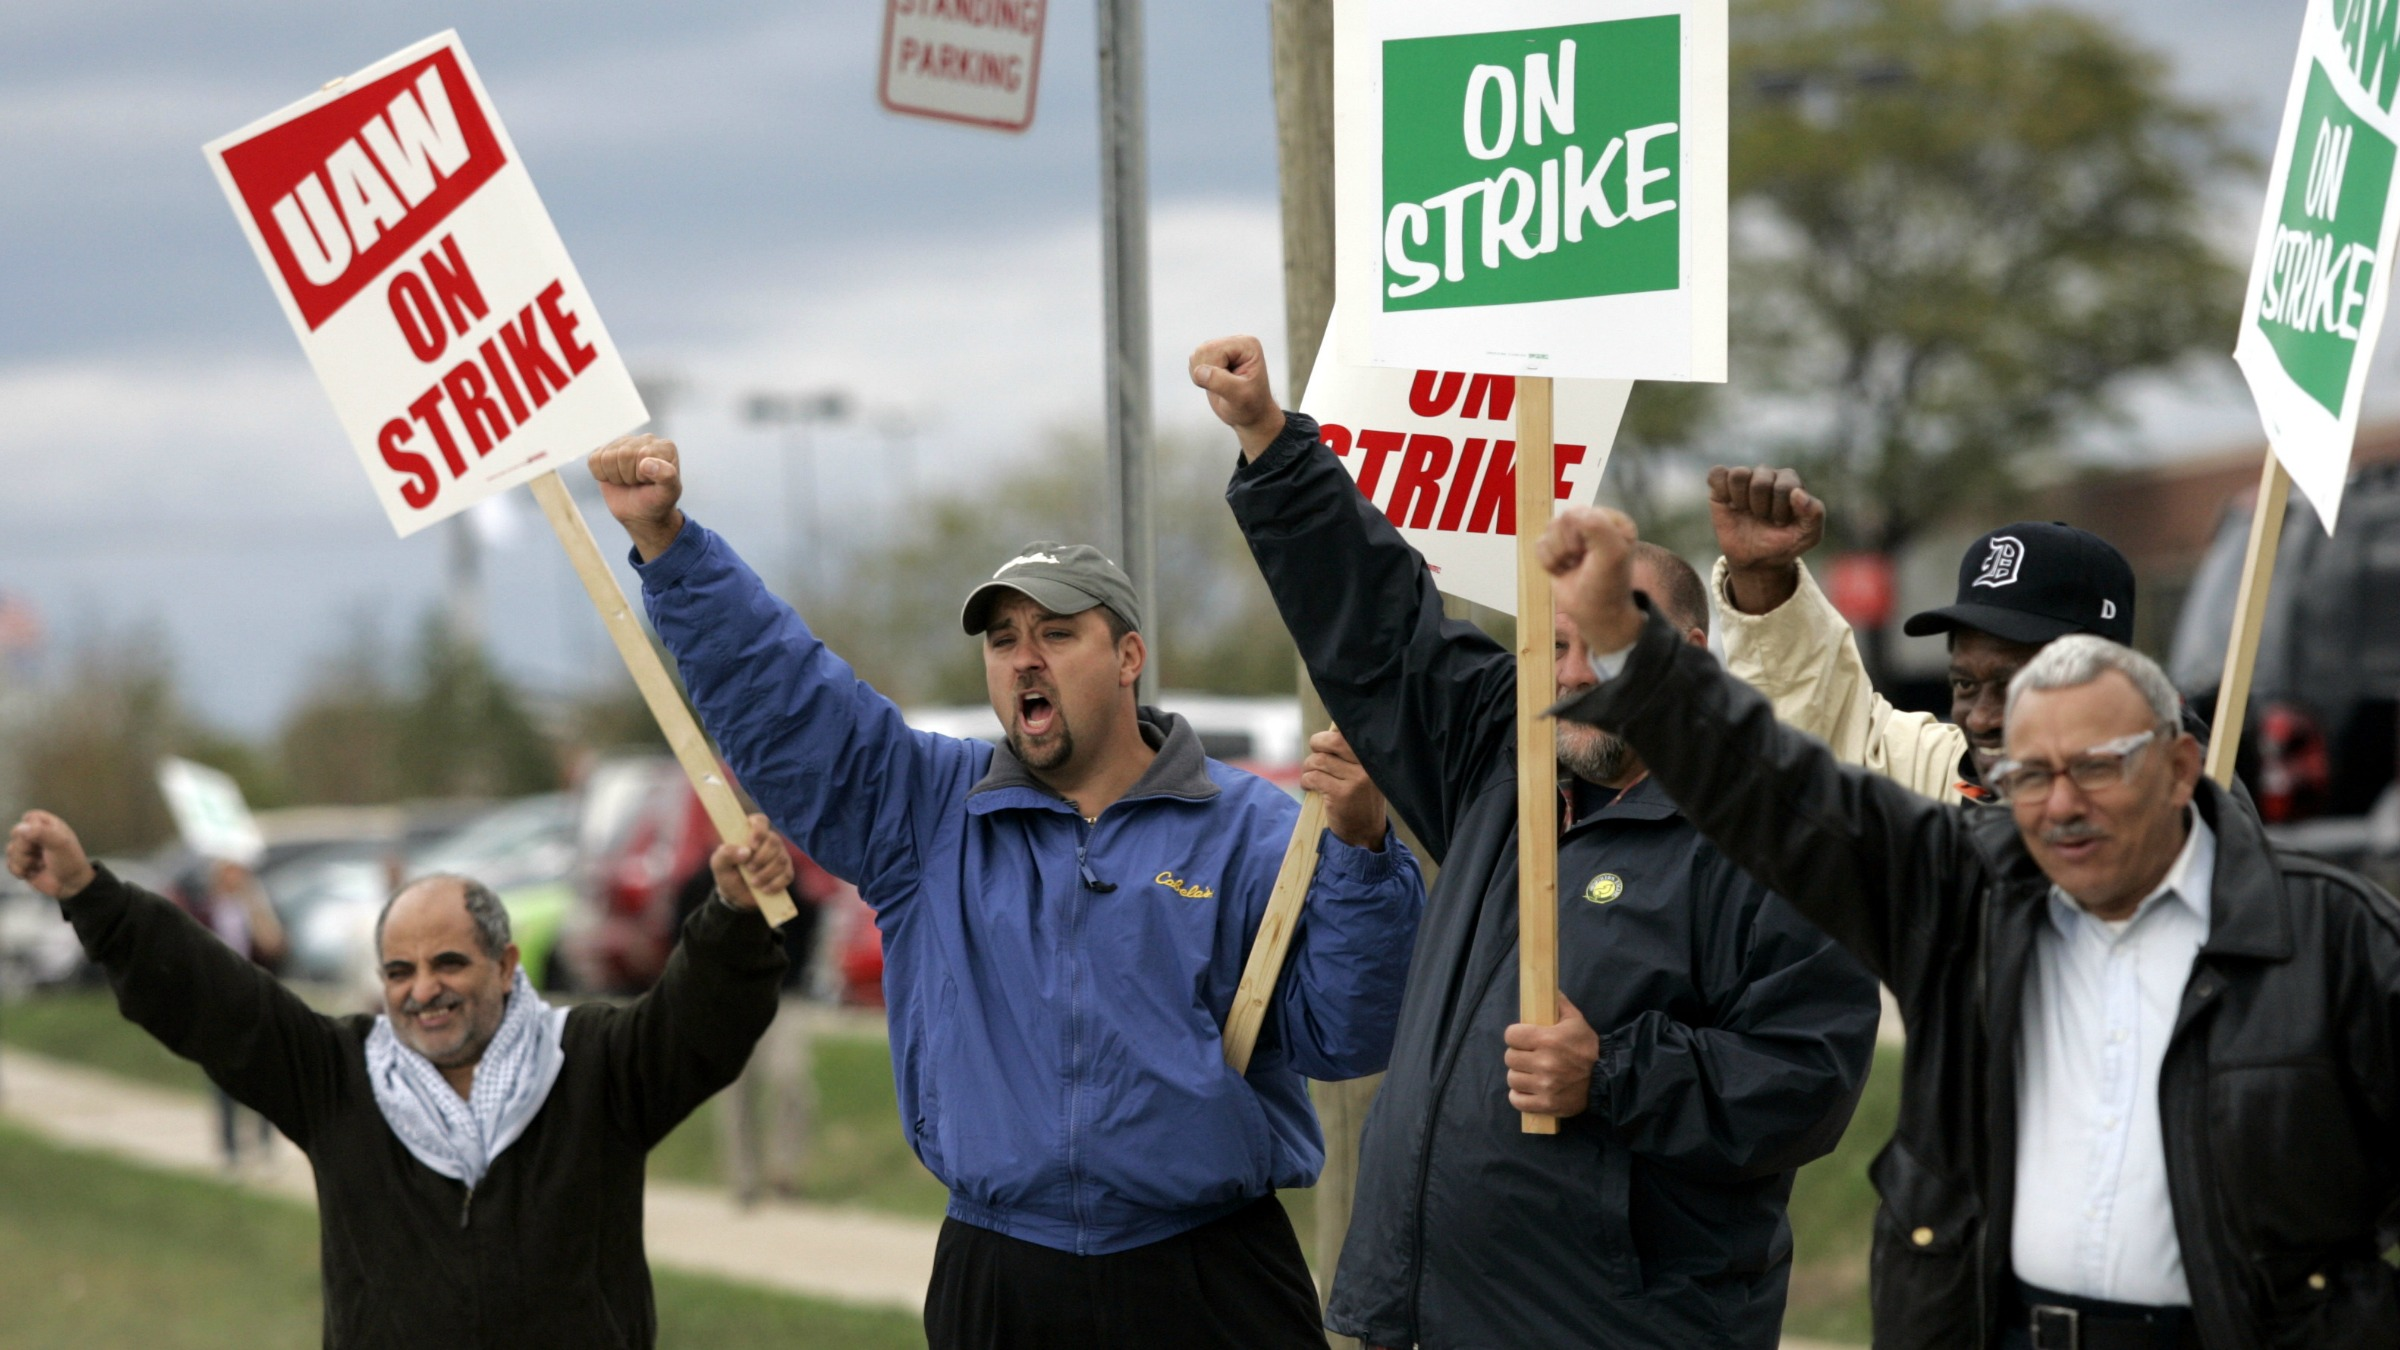 Overall union membership is declining, too.